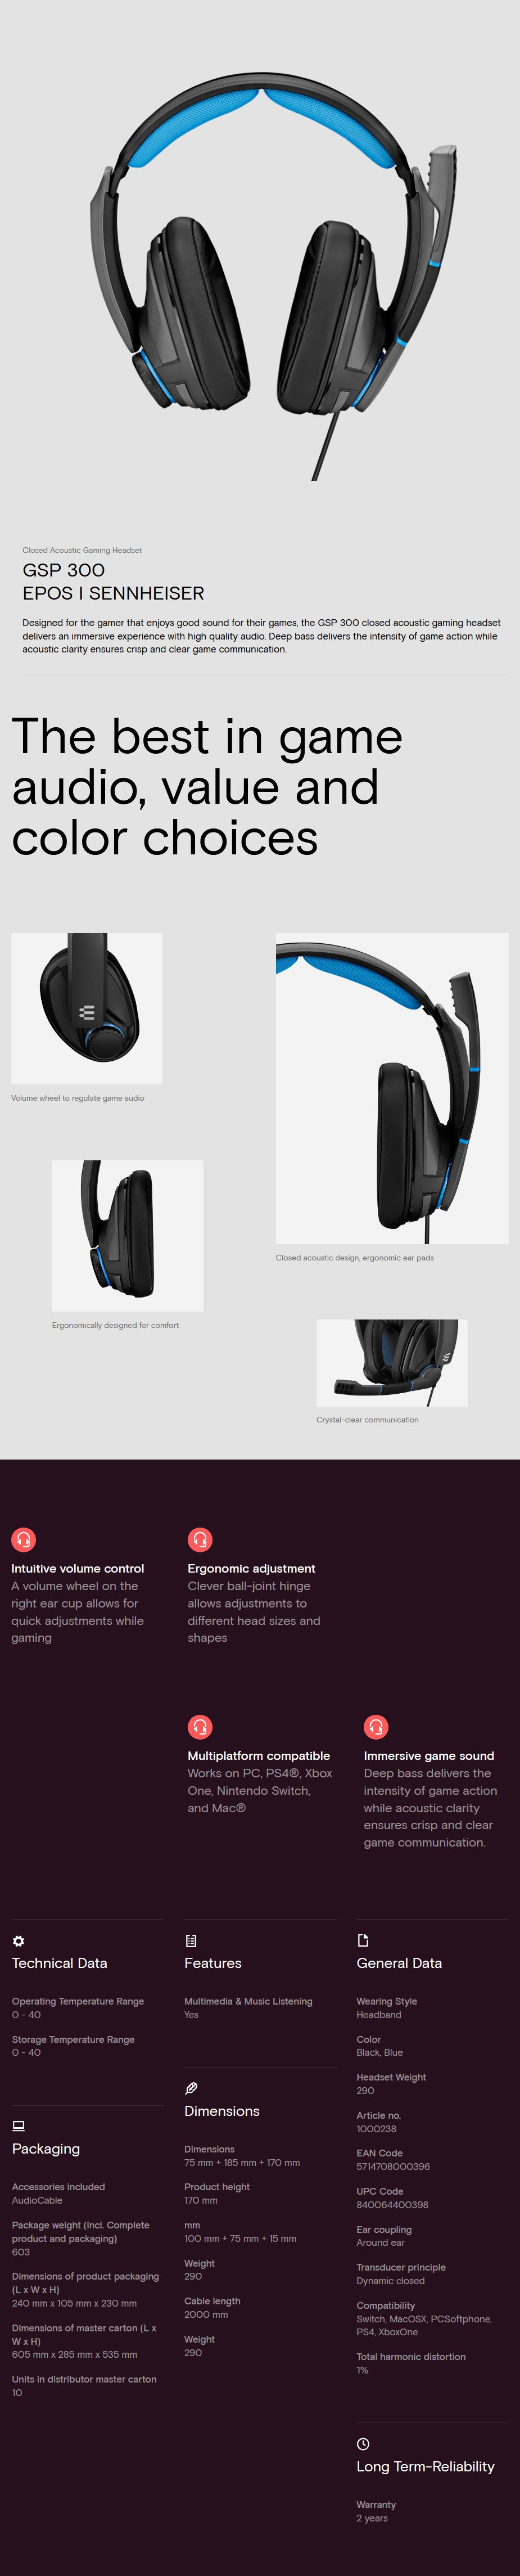 A large marketing image providing additional information about the product EPOS Gaming GSP 300 Gaming Headset - Additional alt info not provided